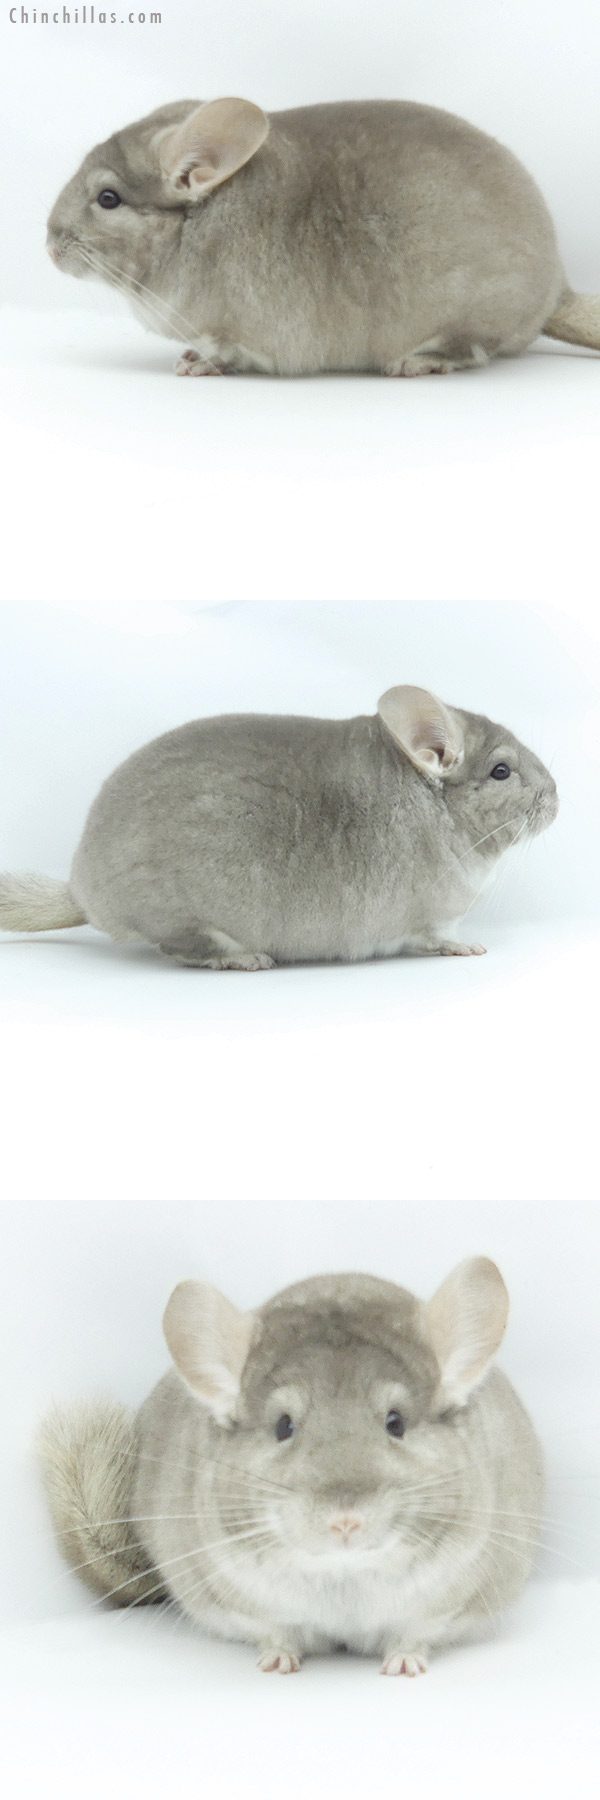 19380 Large Blocky Herd Improvement Quality Section Champion Beige Male Chinchilla